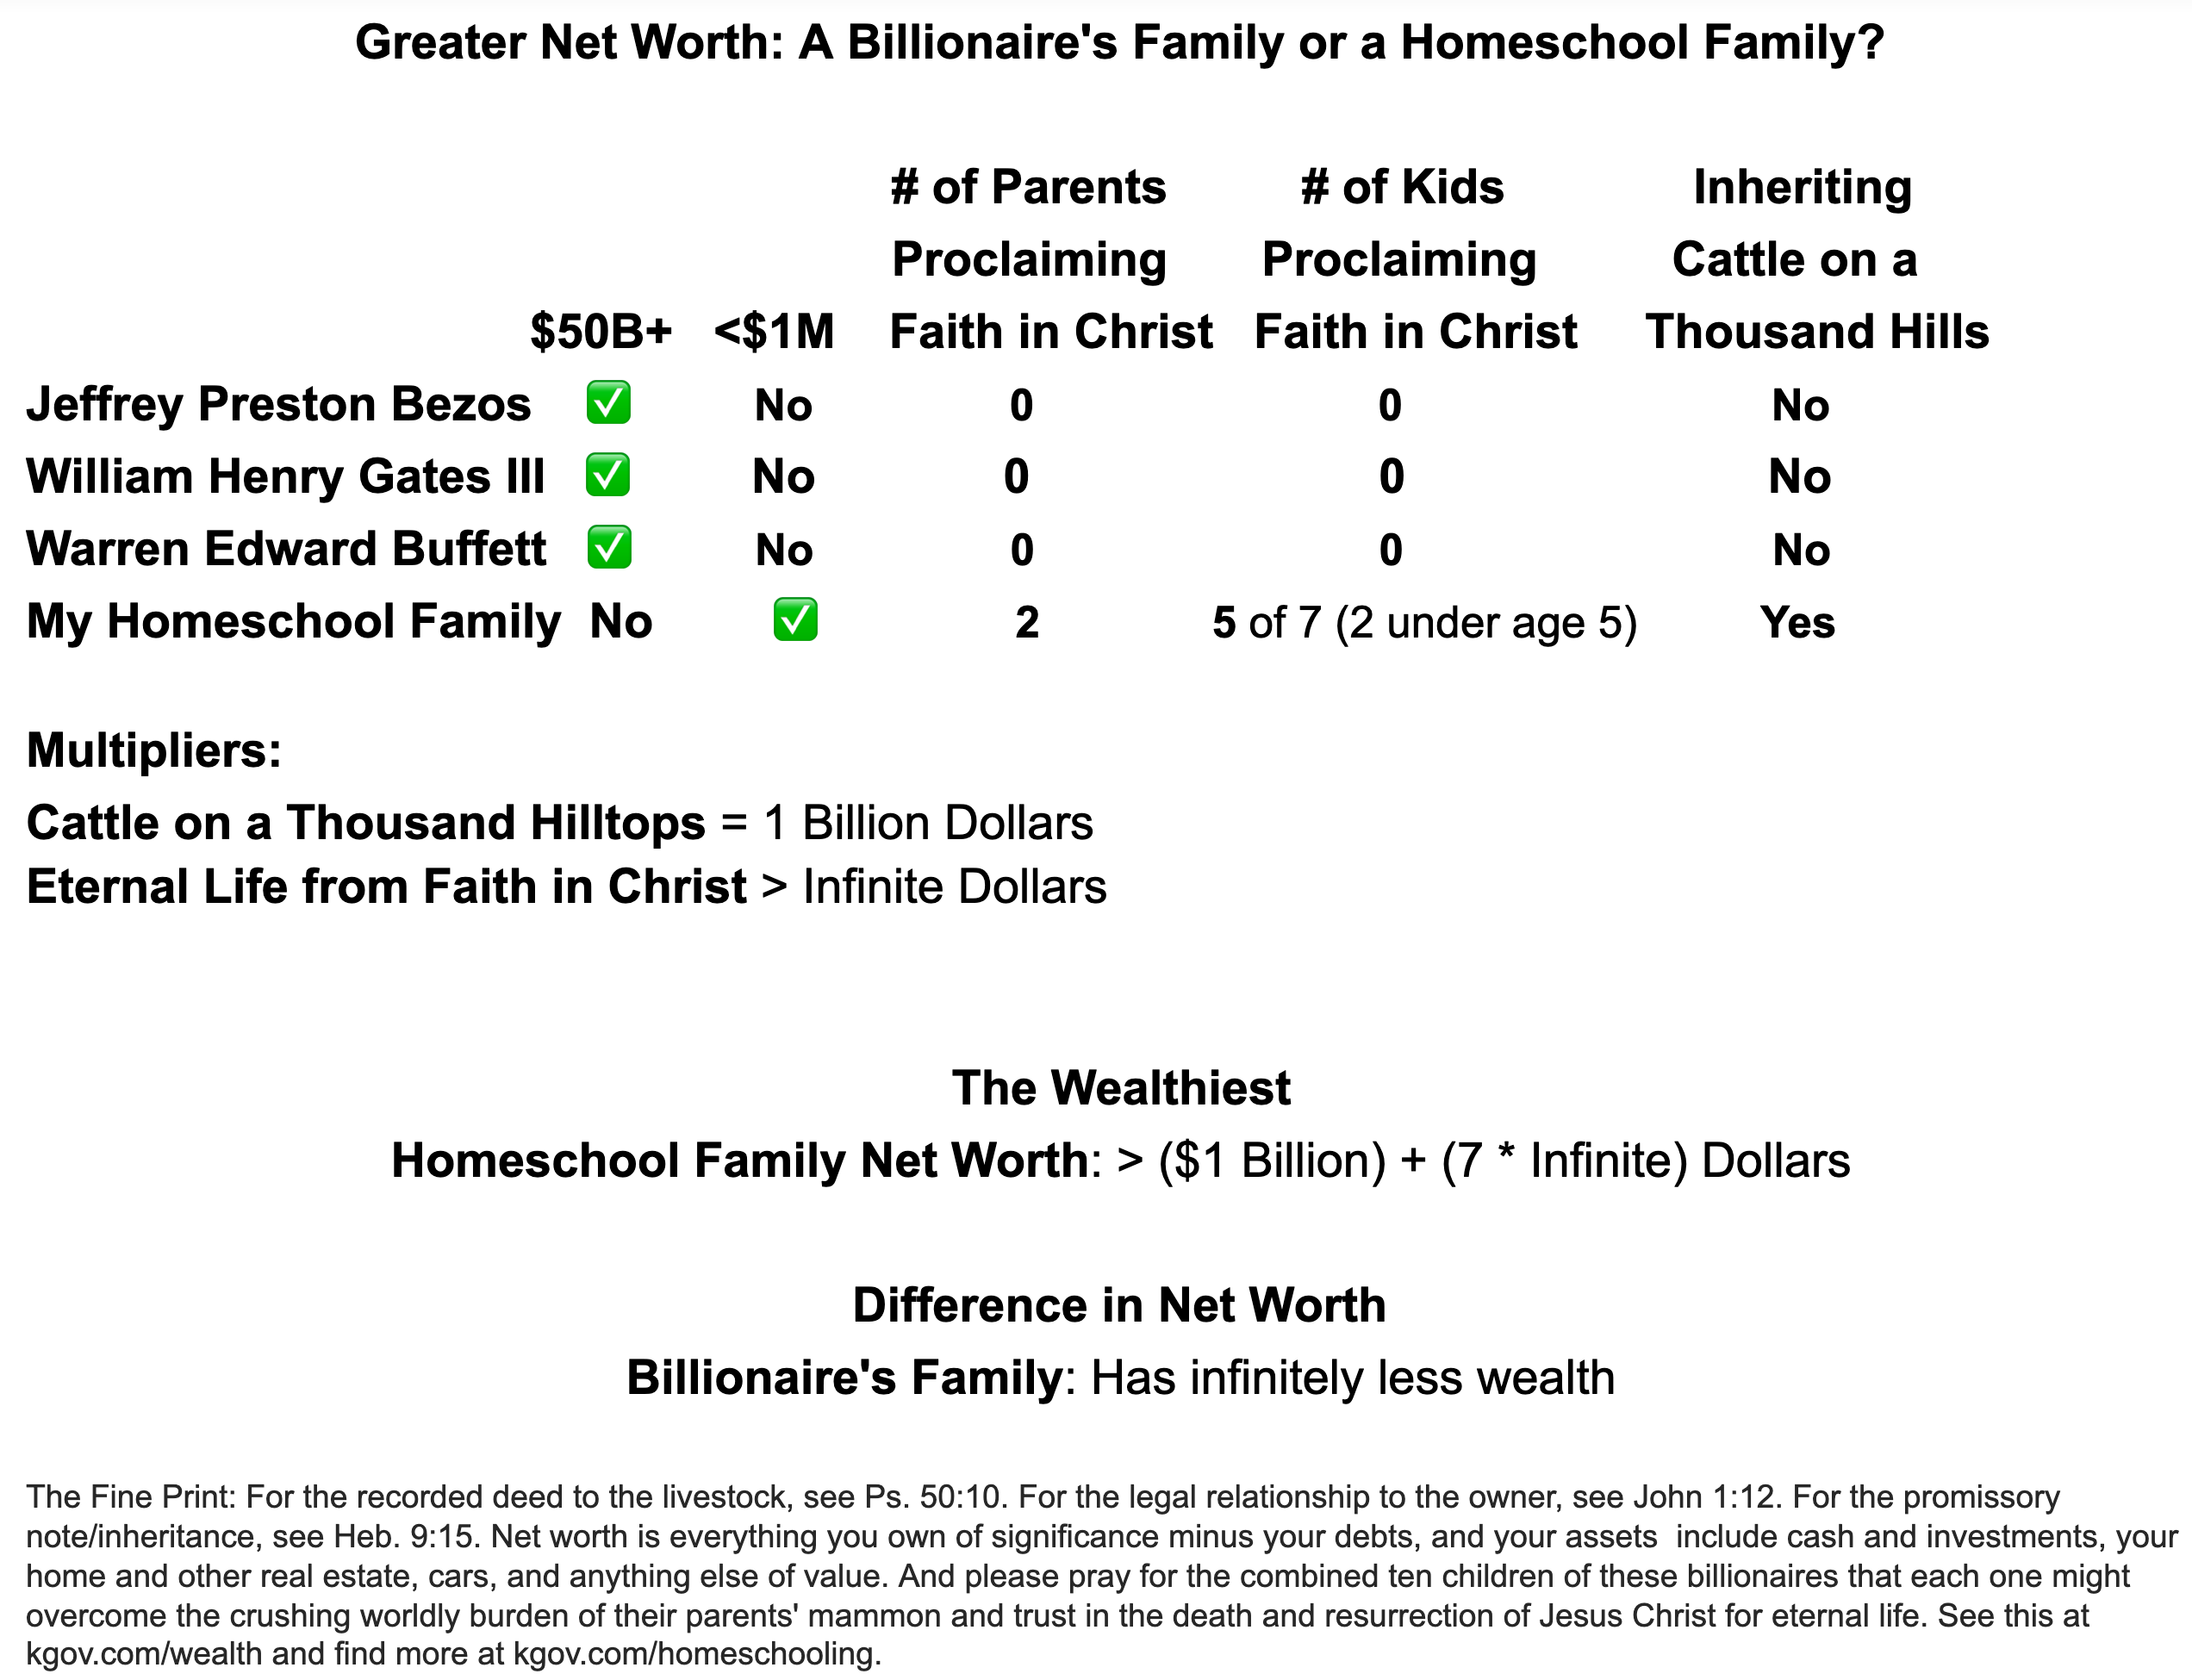 Net Worth worksheet, contrasting a billionaire family with a homeschool family